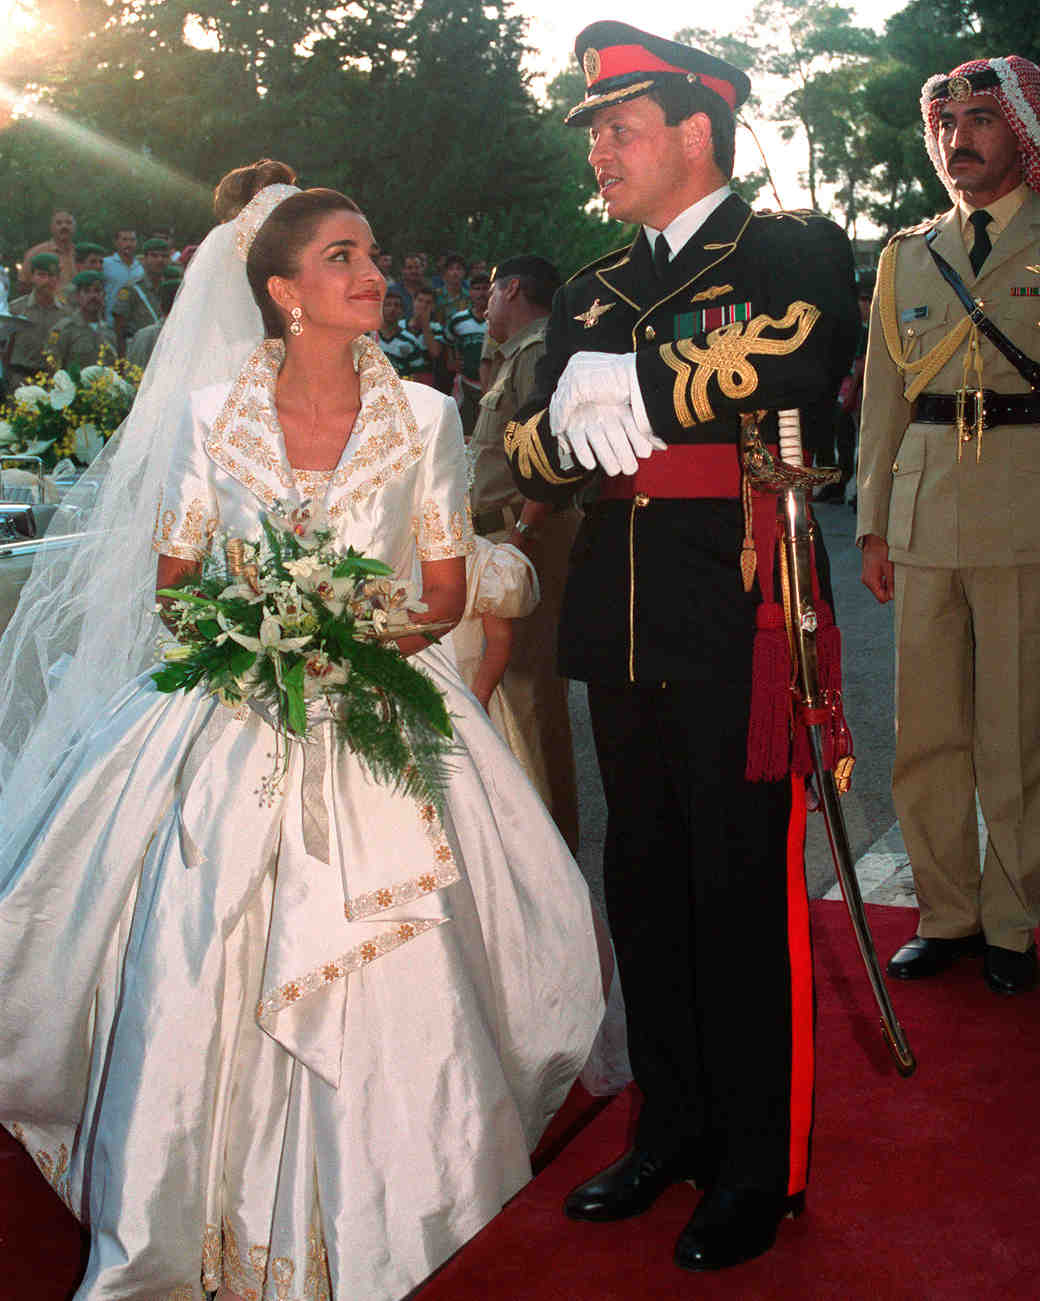 royal-wedding-dress-queen-rania-jordan-51400480-1115.jpg